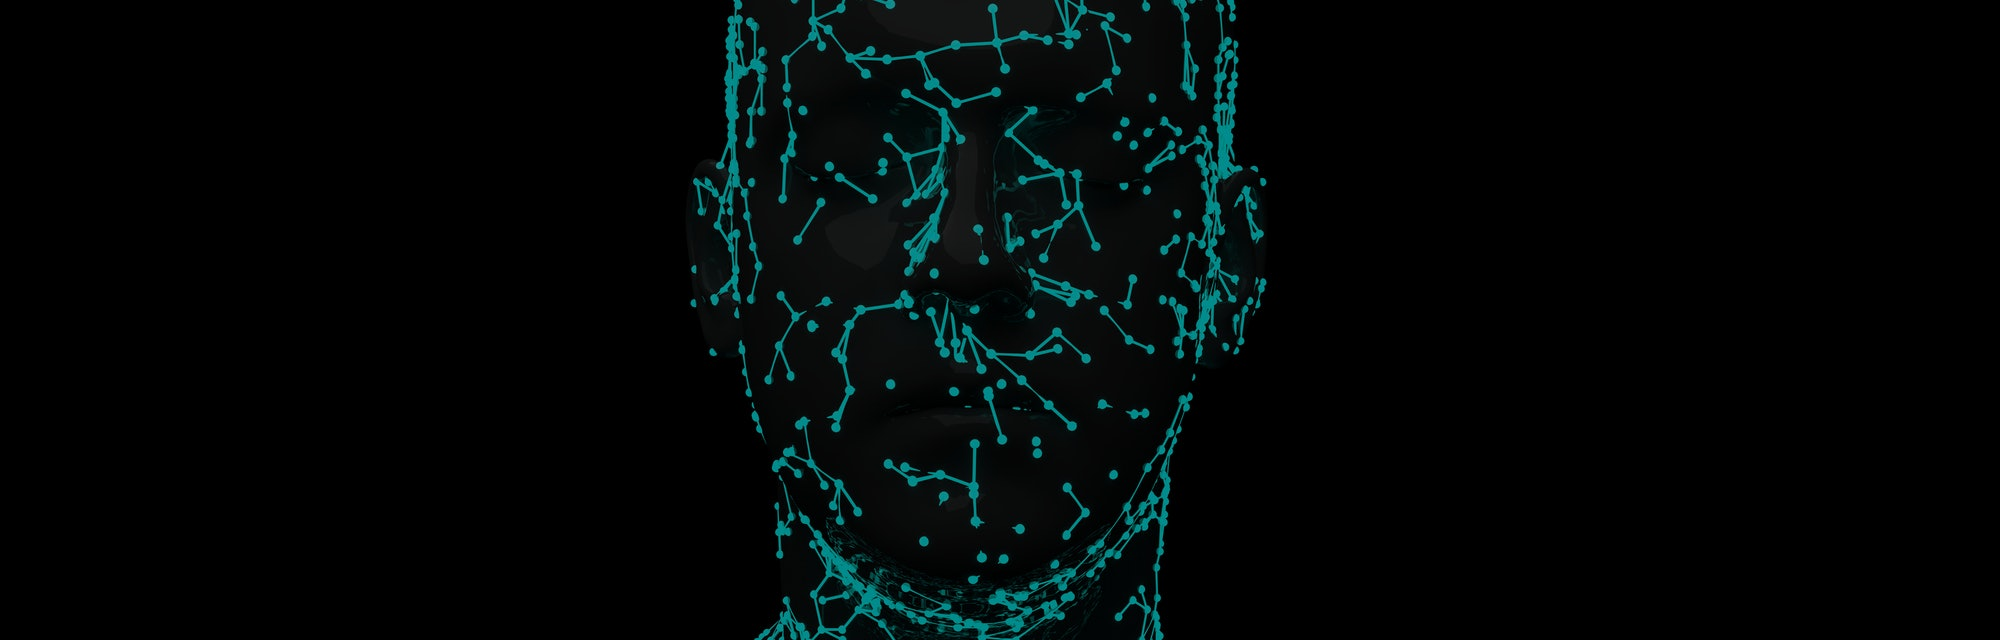 Facial Recognition System 3d illustration